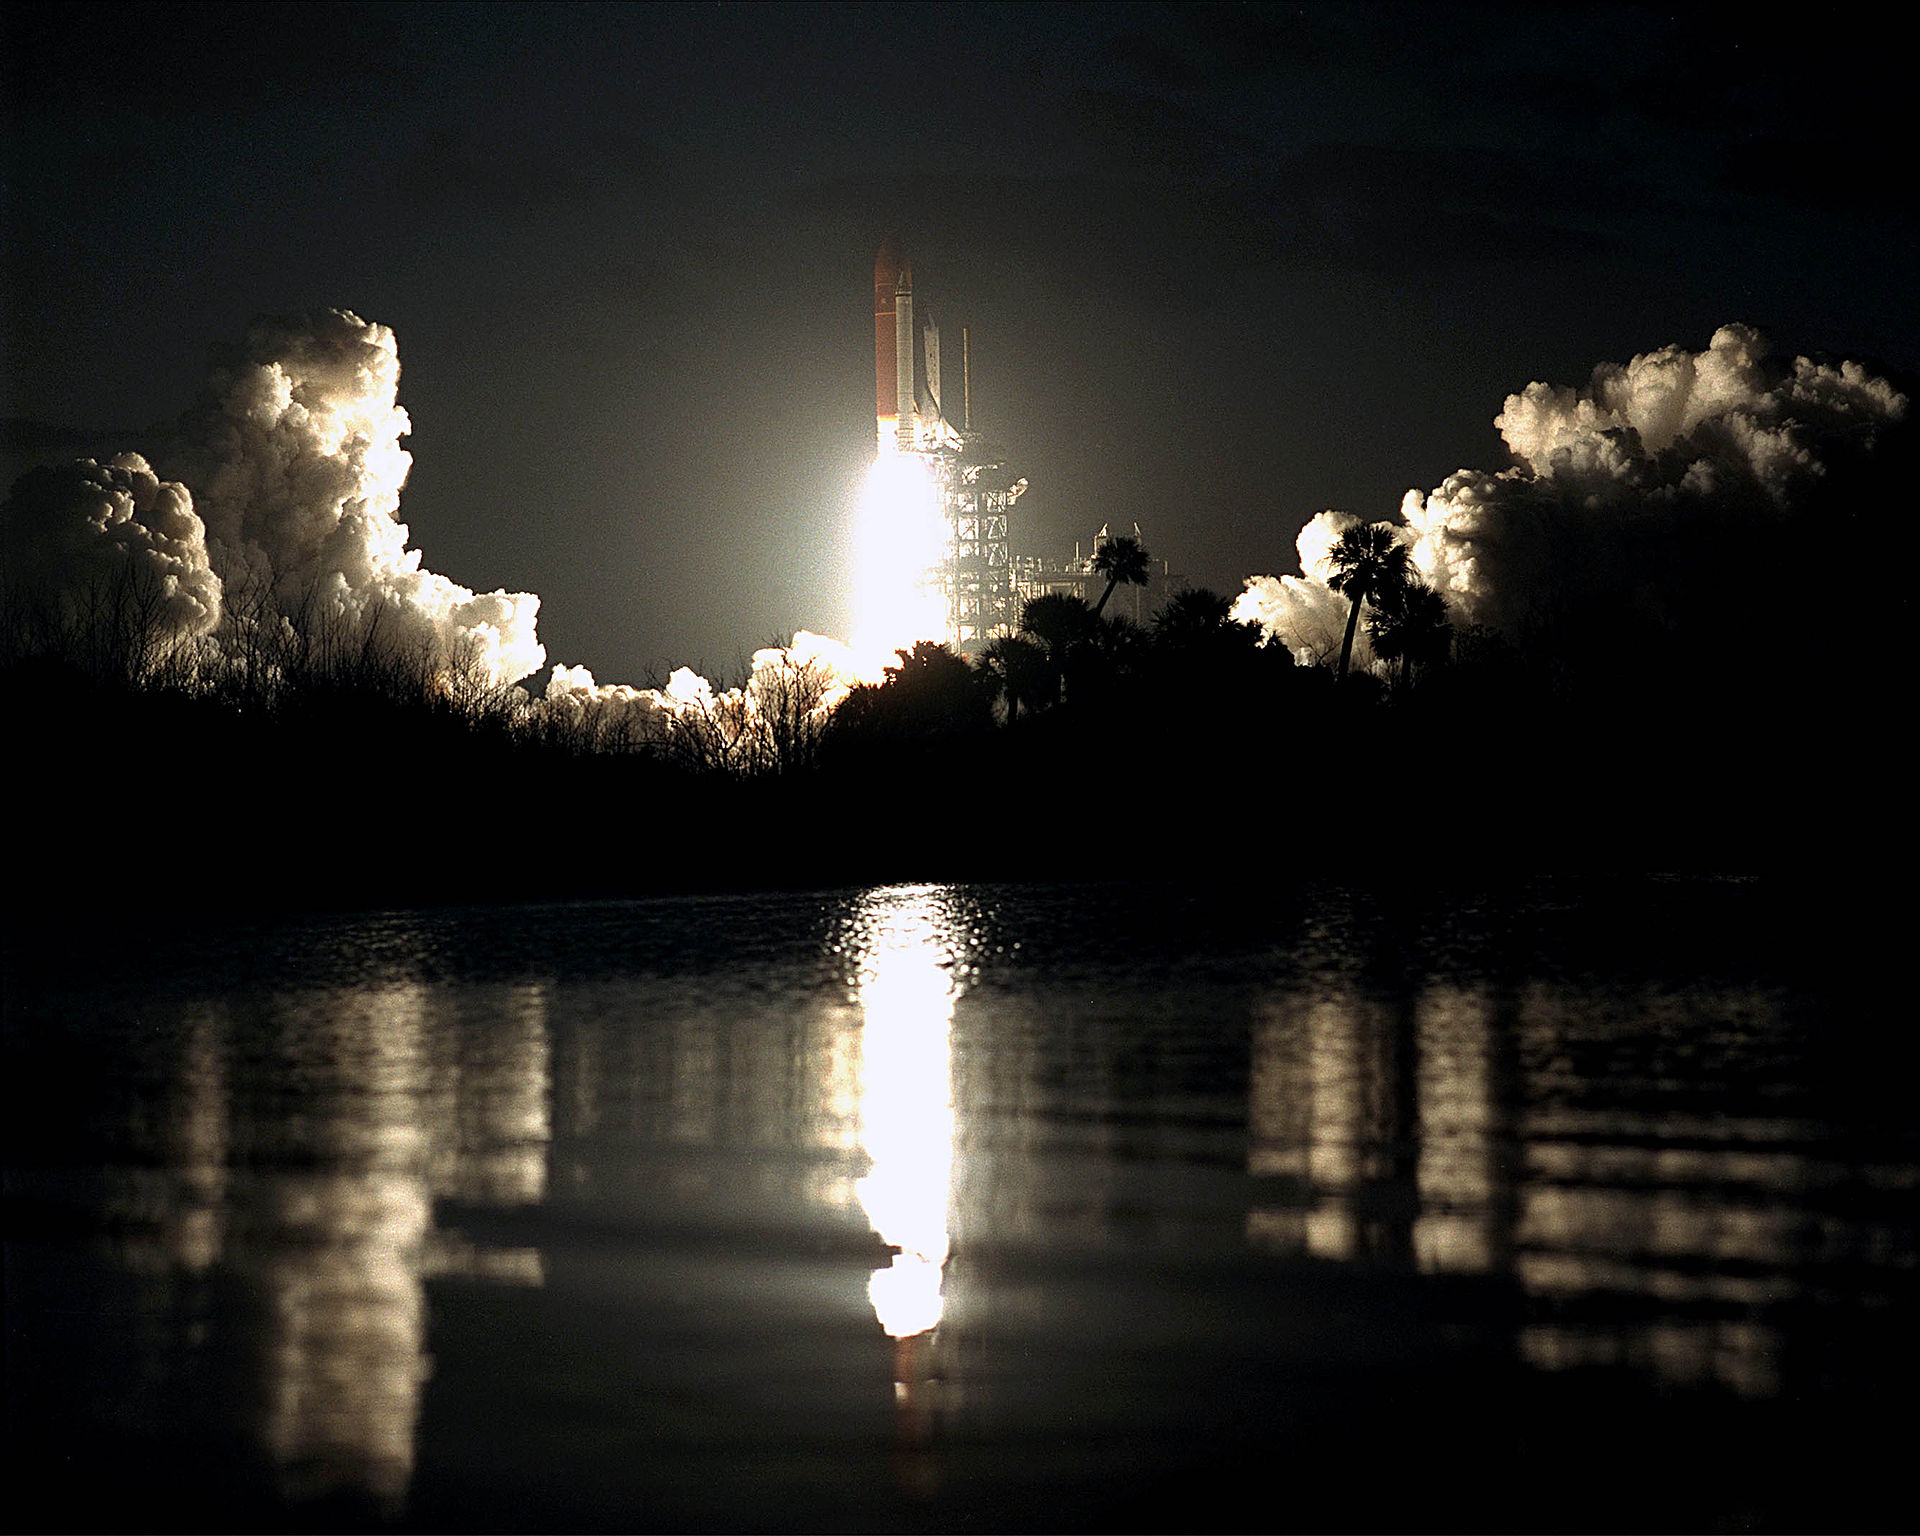 1920px-Space_Shuttle_Columbia_launches_on_STS-61-C.jpg